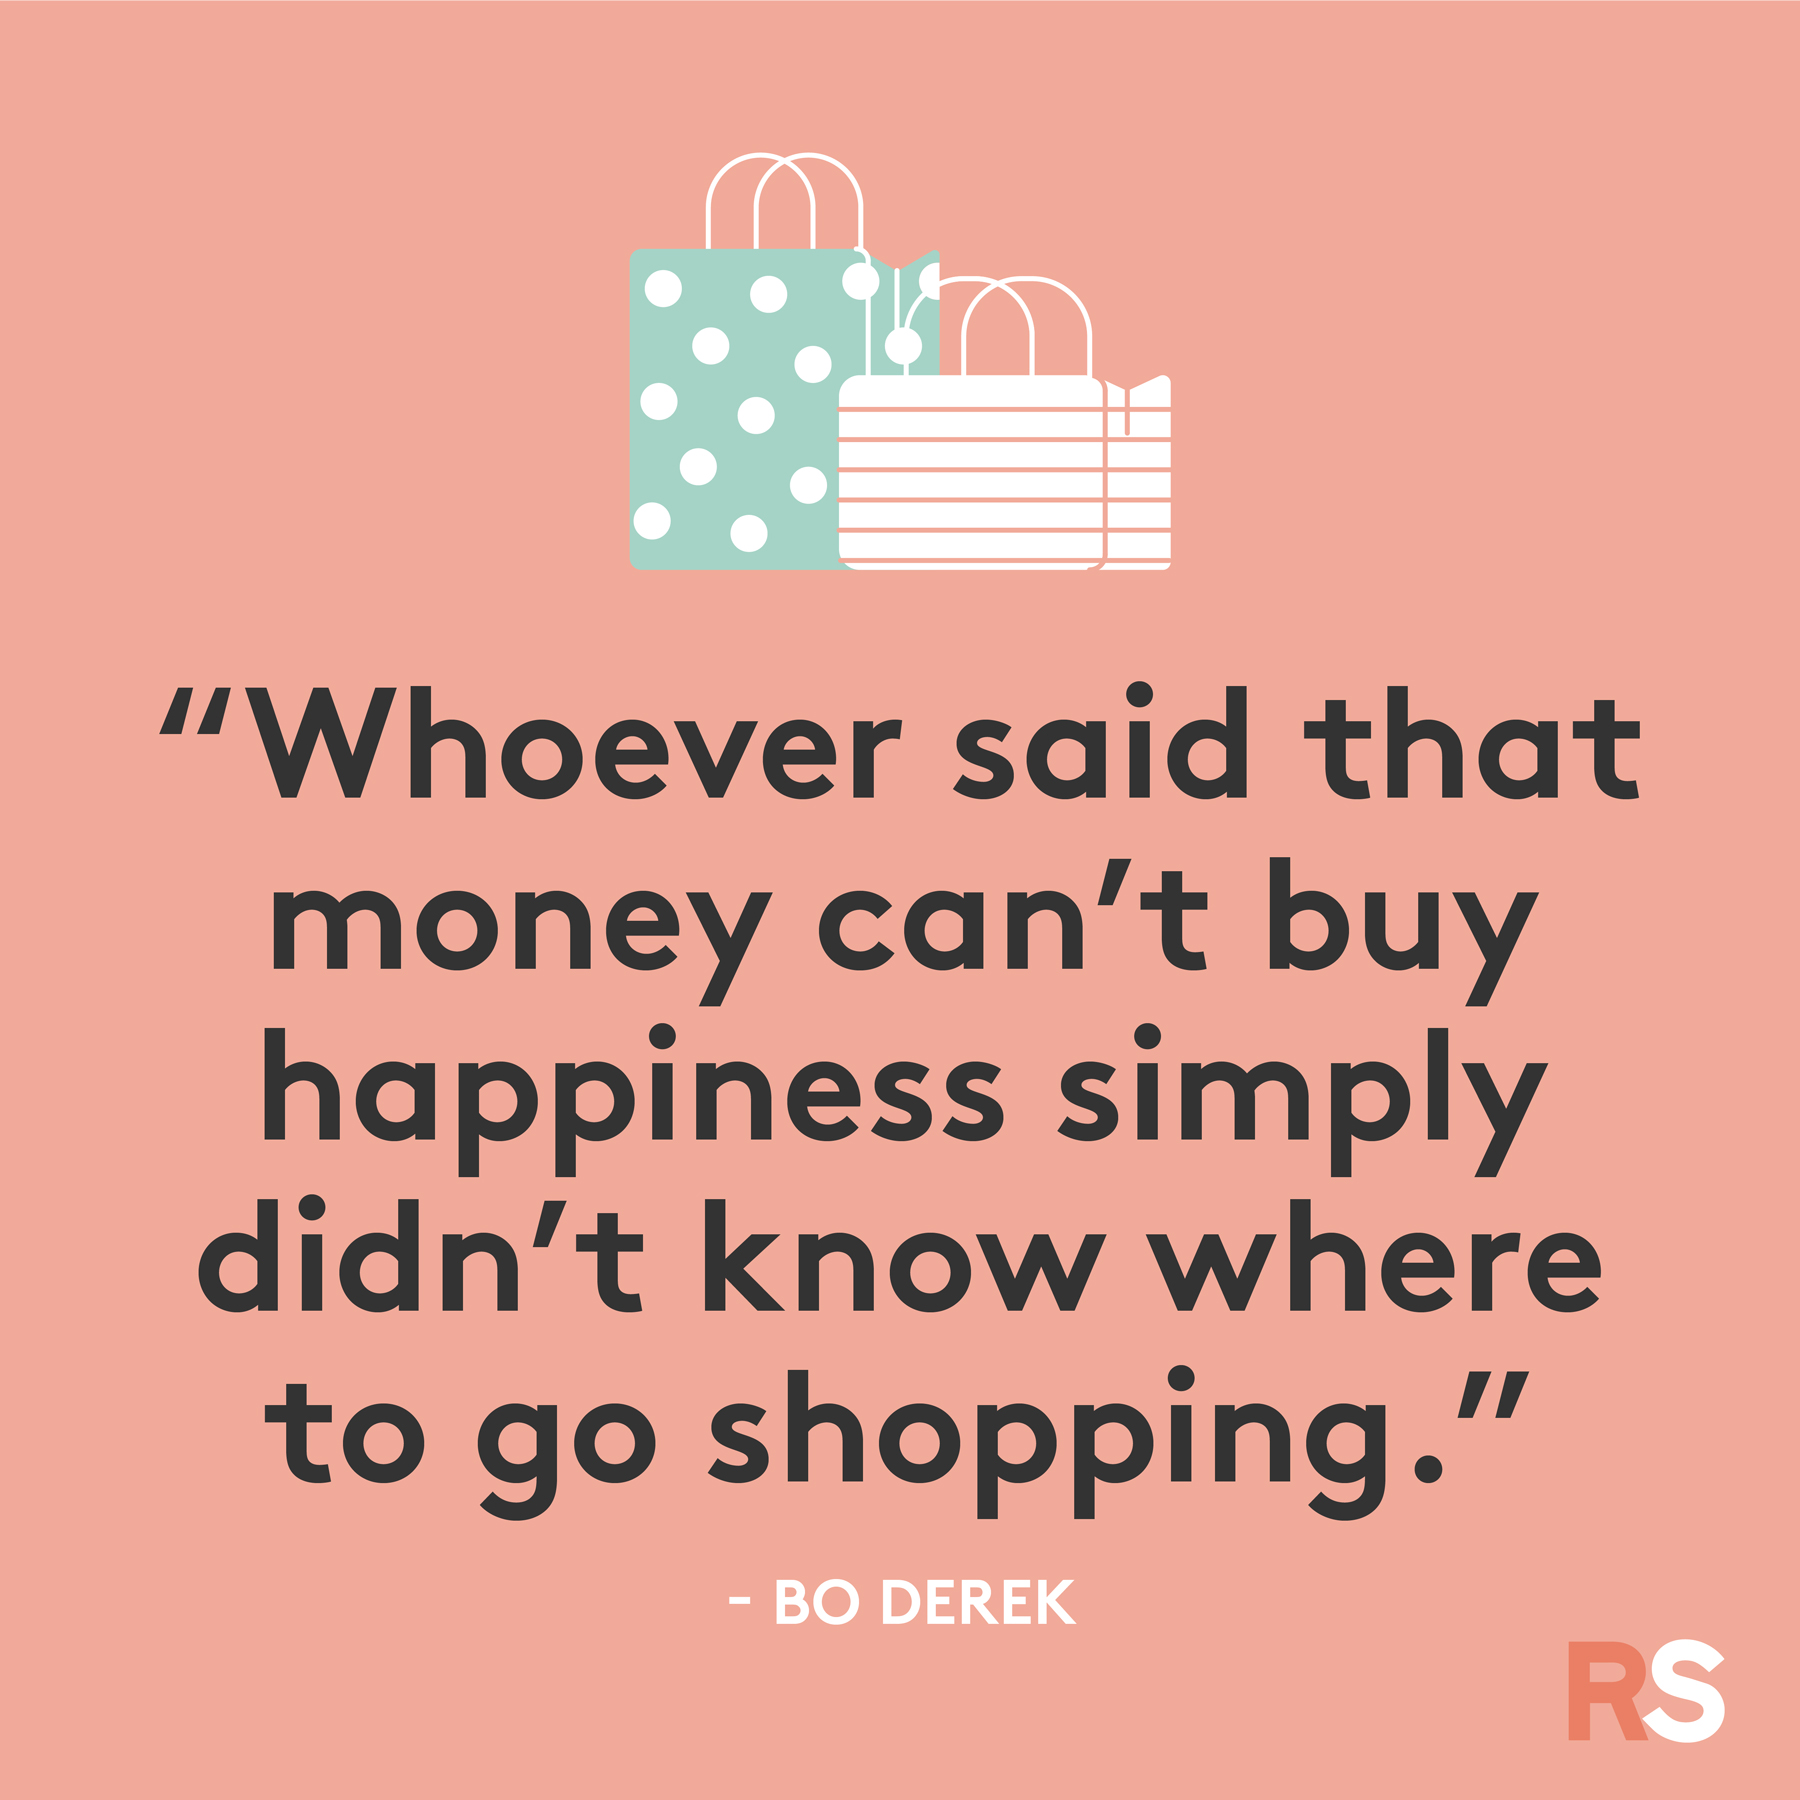 Black Friday funny quotes, sayings - Bo Derek, money can't buy happiness